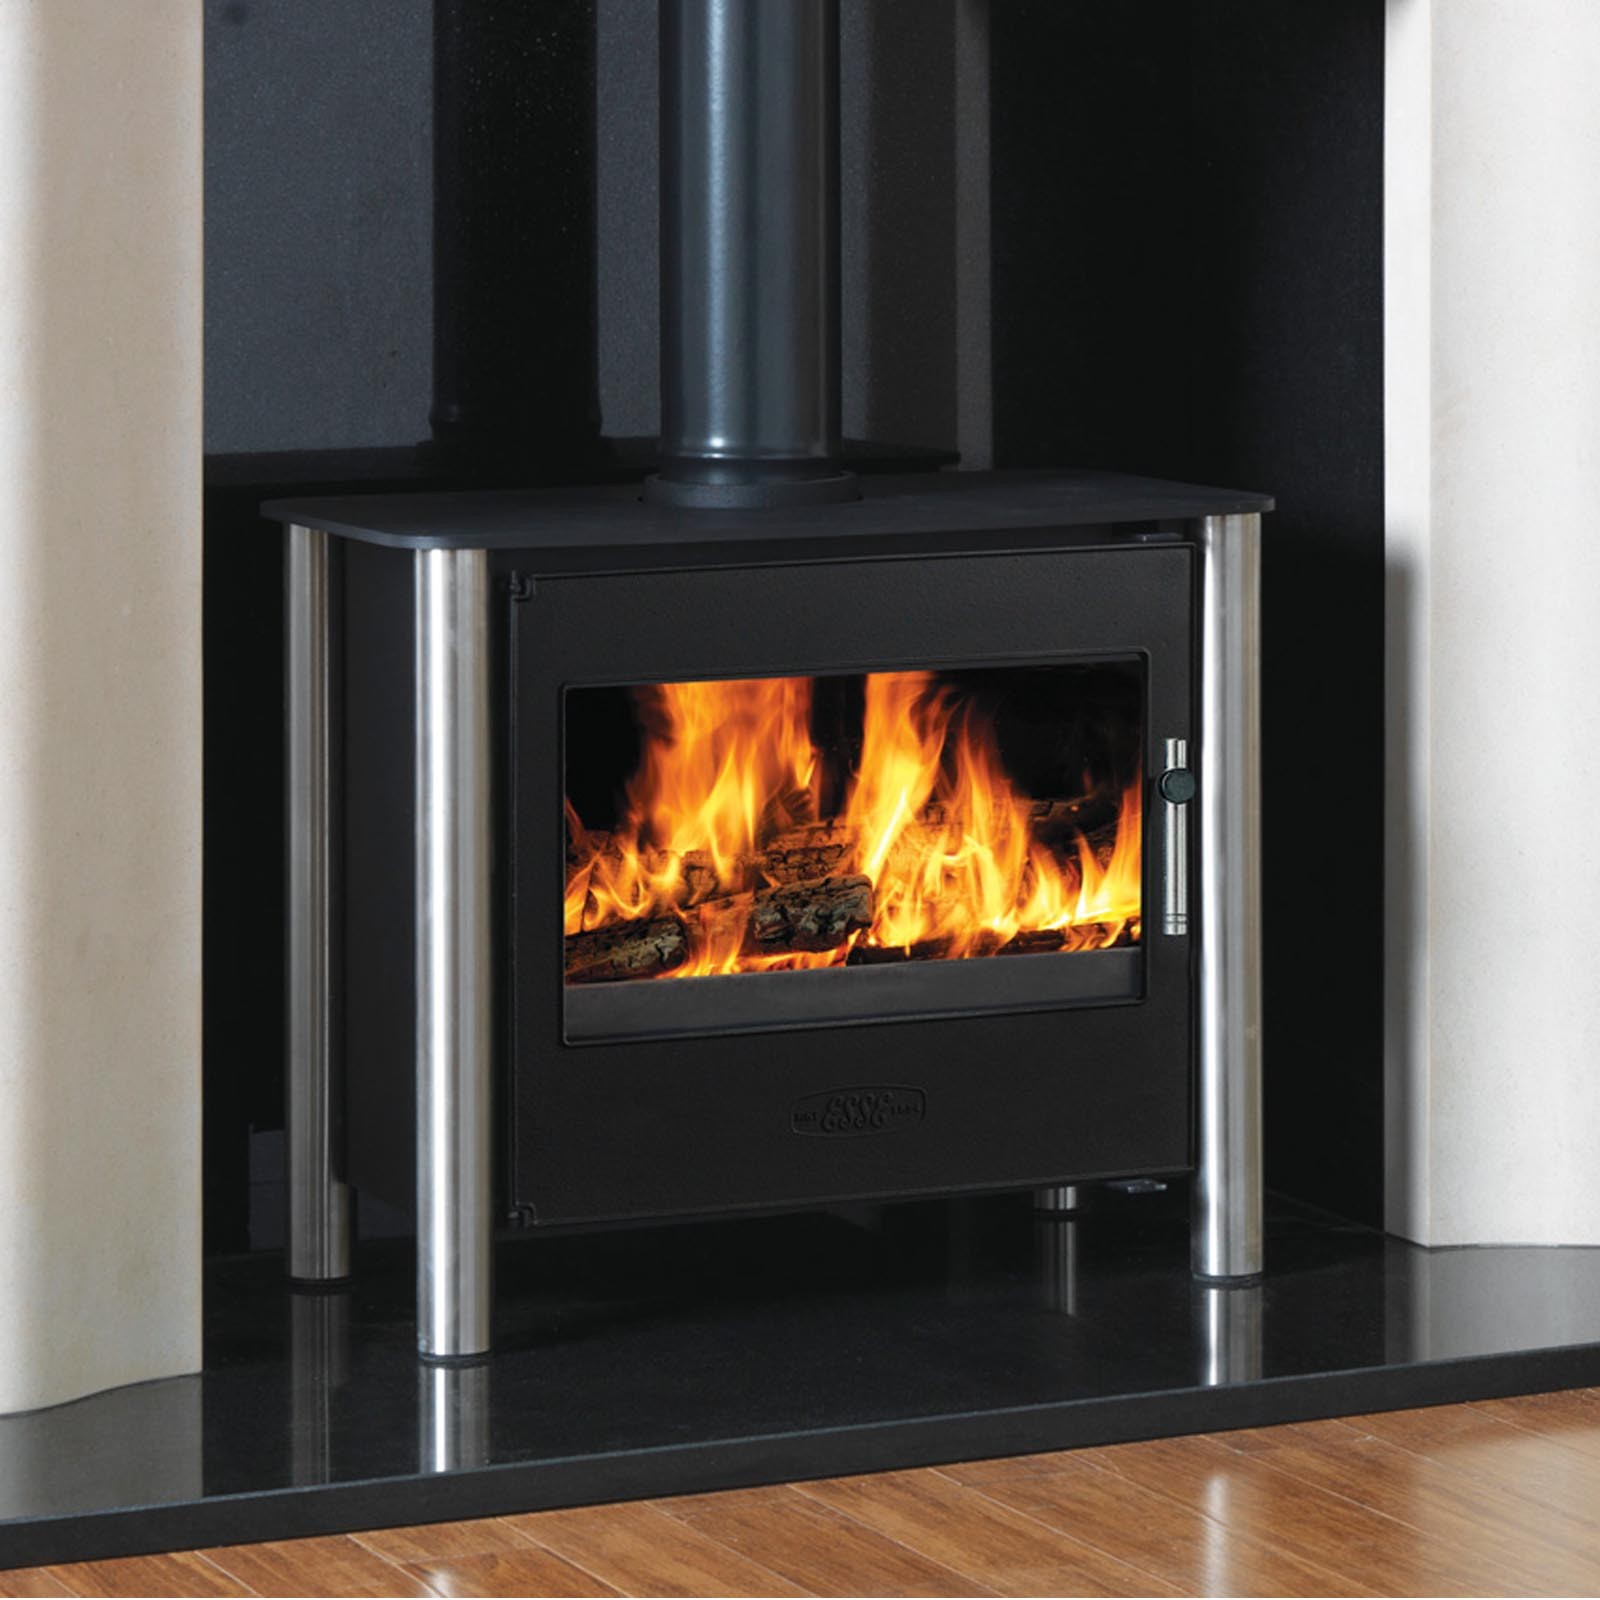 UK Deals  Esse 125 Multifuel / Woodburning Gas Stove  Modern Design